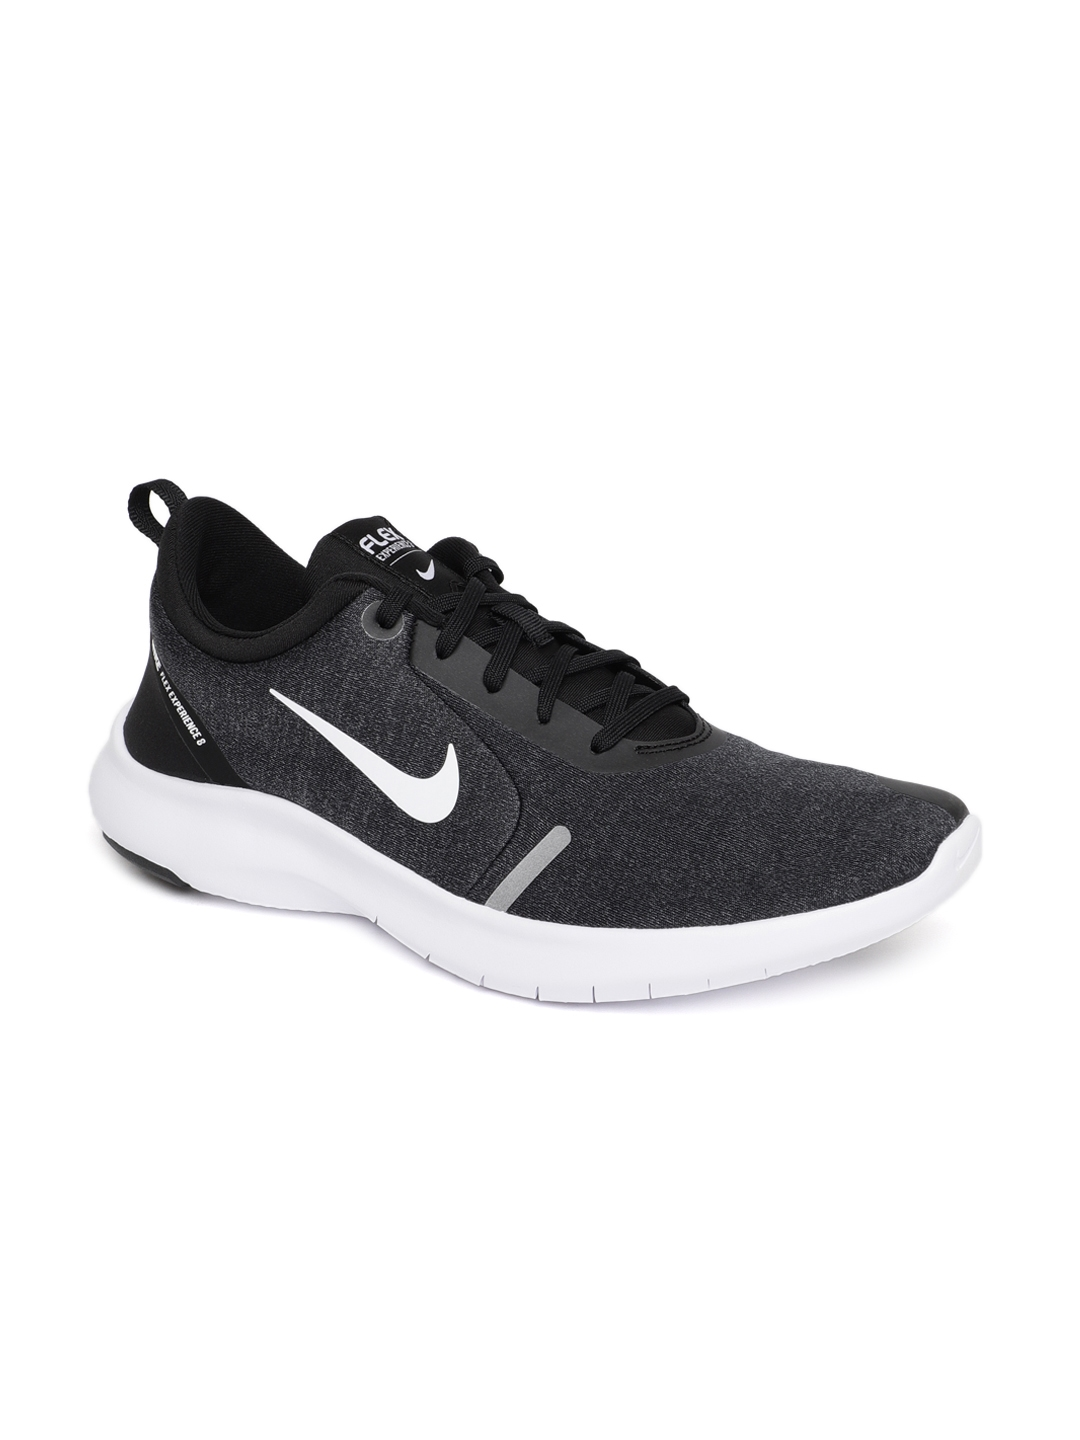 3d386bd4579 Buy Nike Men Black FLEX EXPERIENCE 8 Running Shoes - Sports Shoes ...